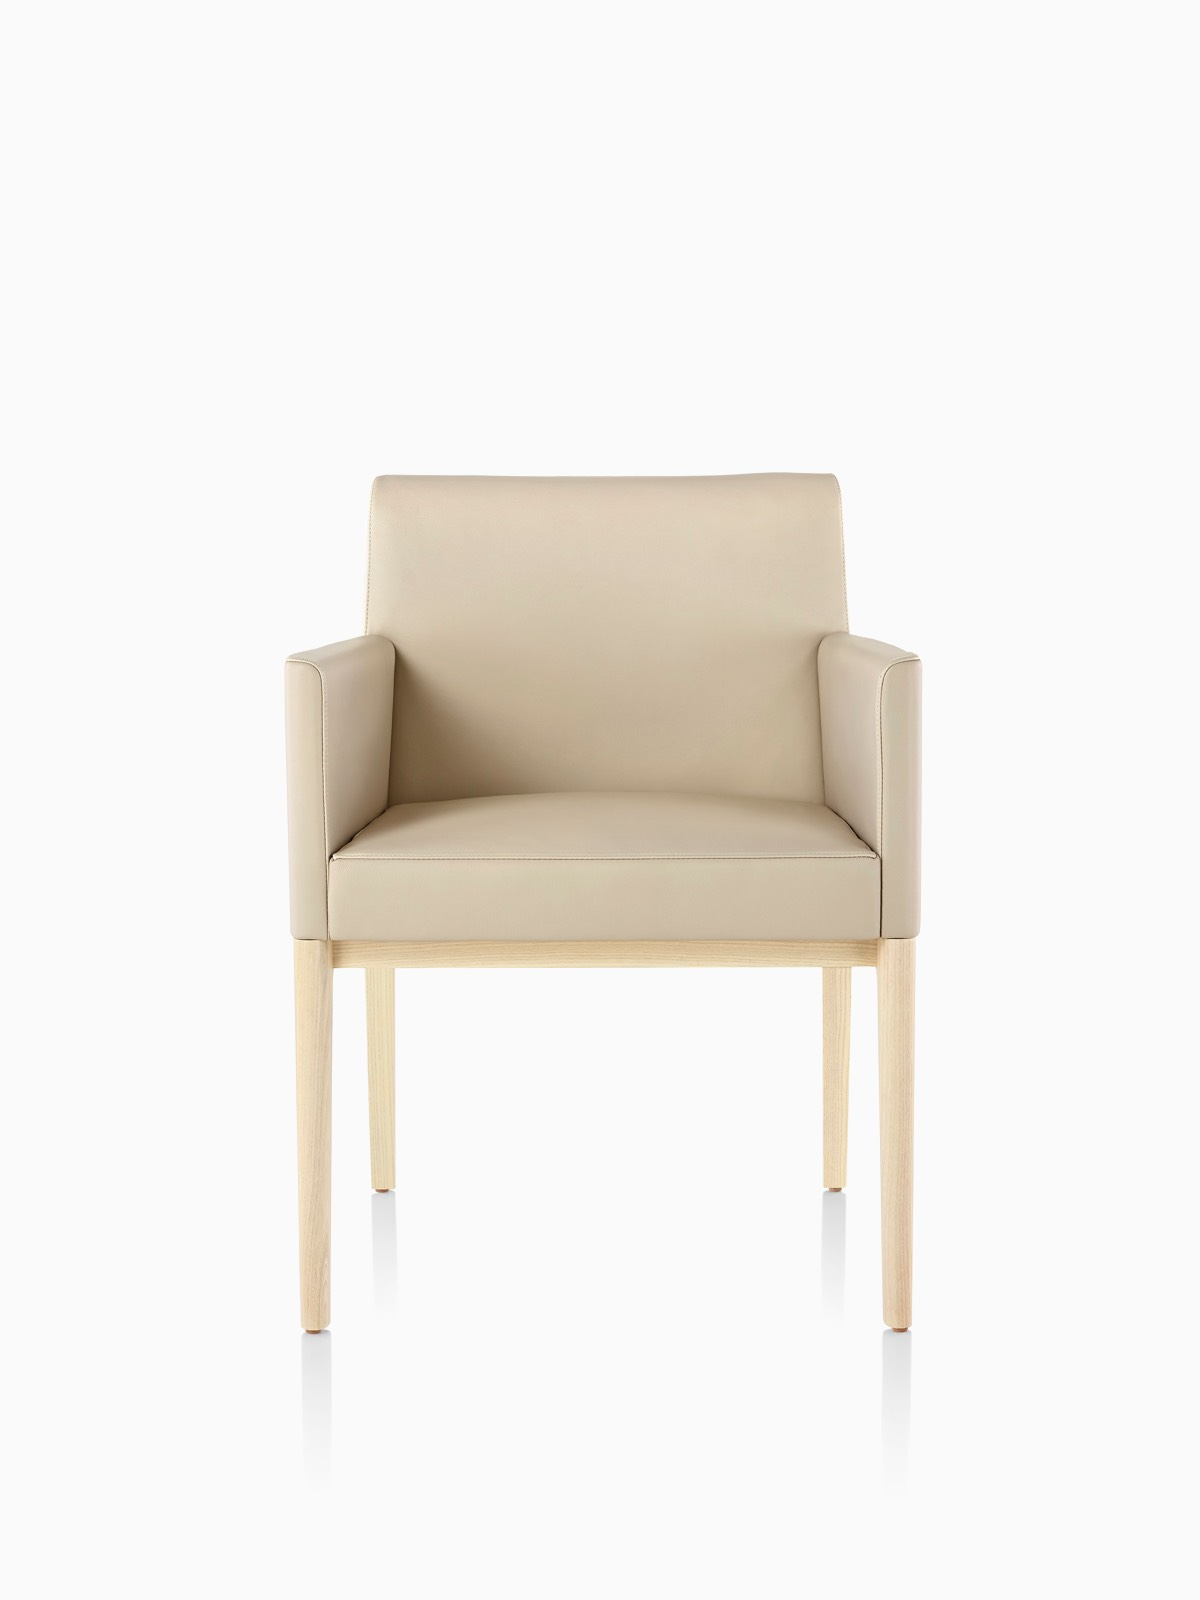 Nessel Chair